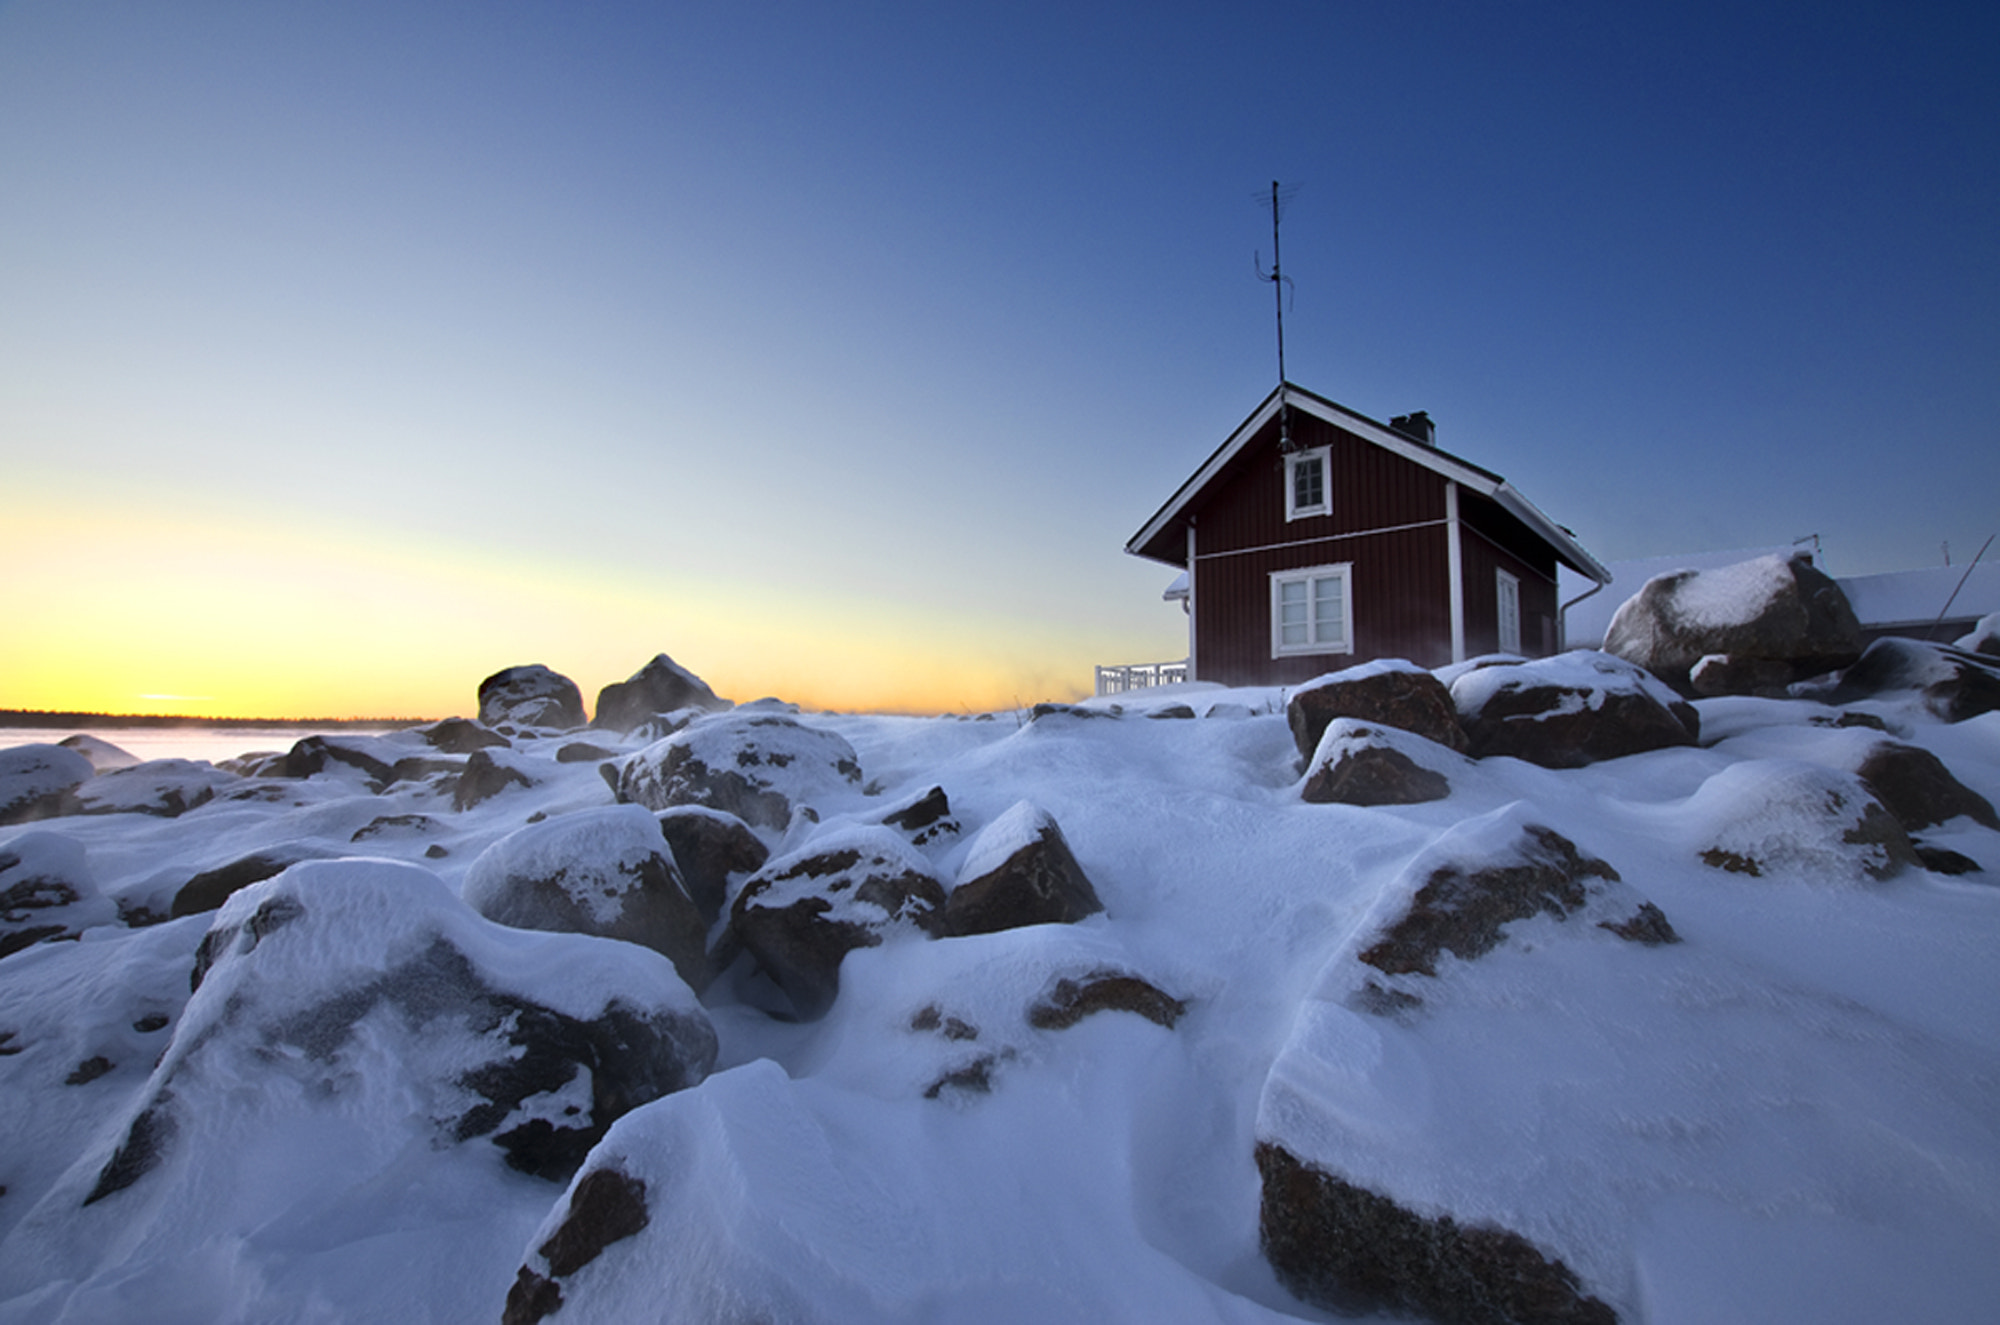 Photograph The House Of The Rising Sun by Sten Wiklund on 500px